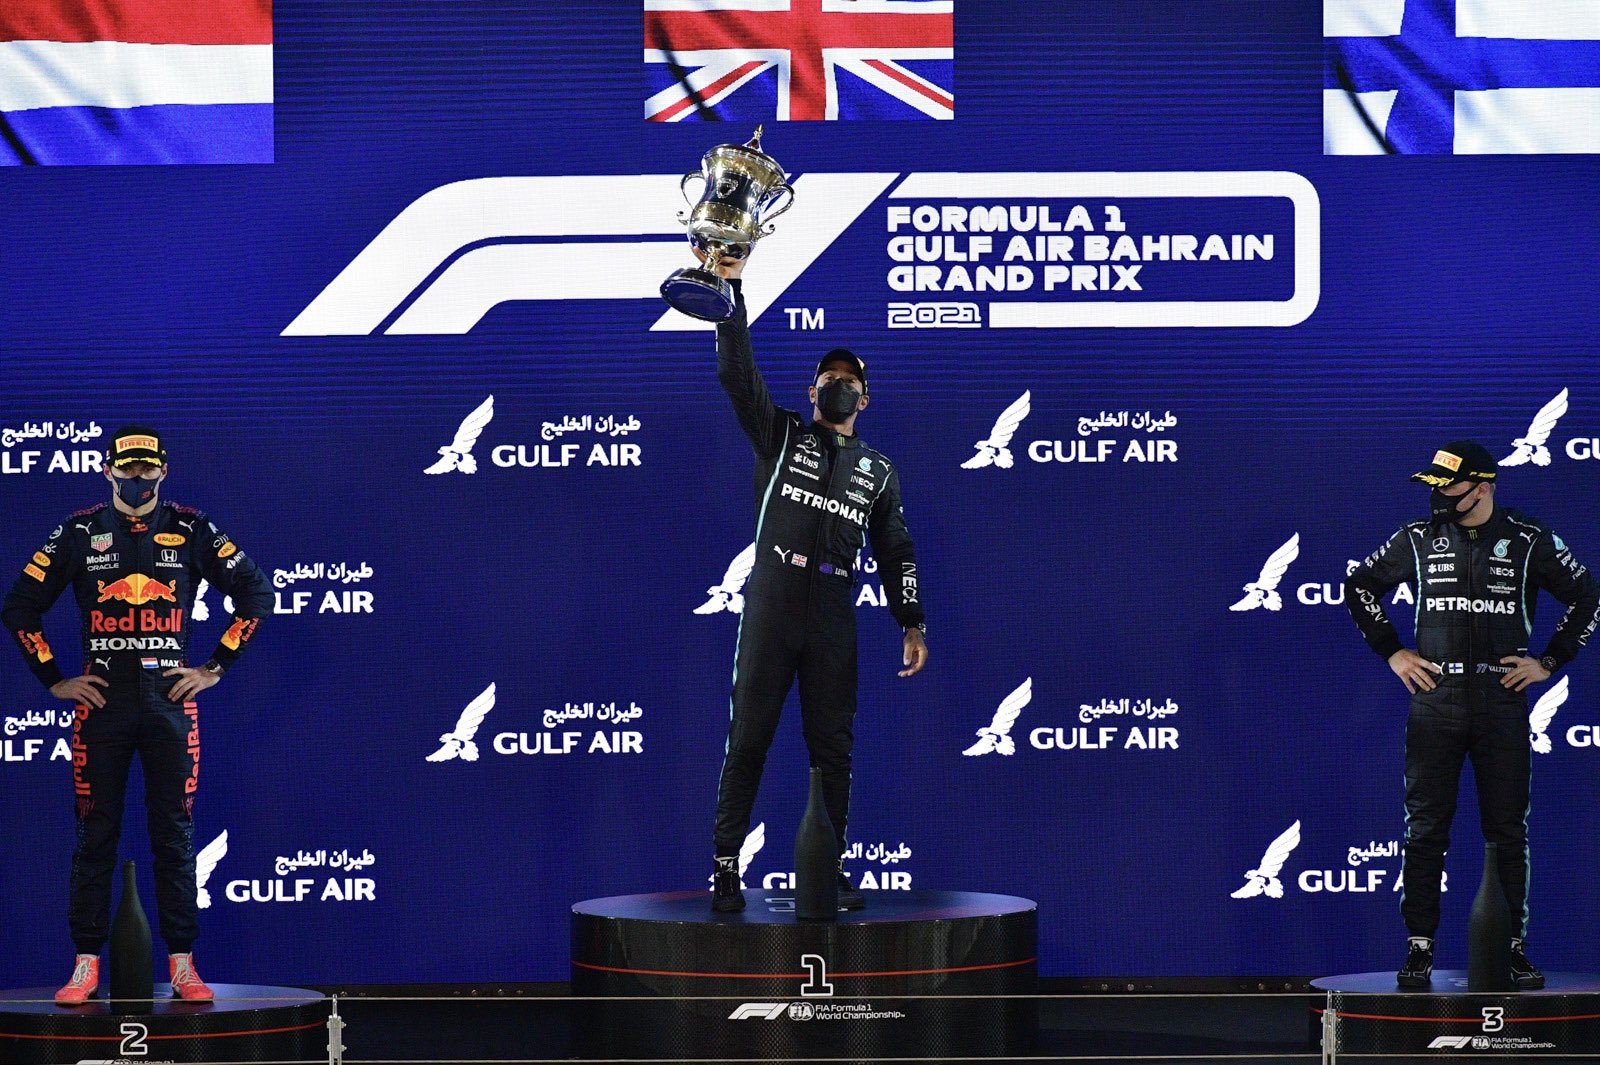 """Featured image for """"HAMILTON WINS IN BAHRAIN AFTER INTENSE BATTLE WITH VERSTAPPEN"""""""